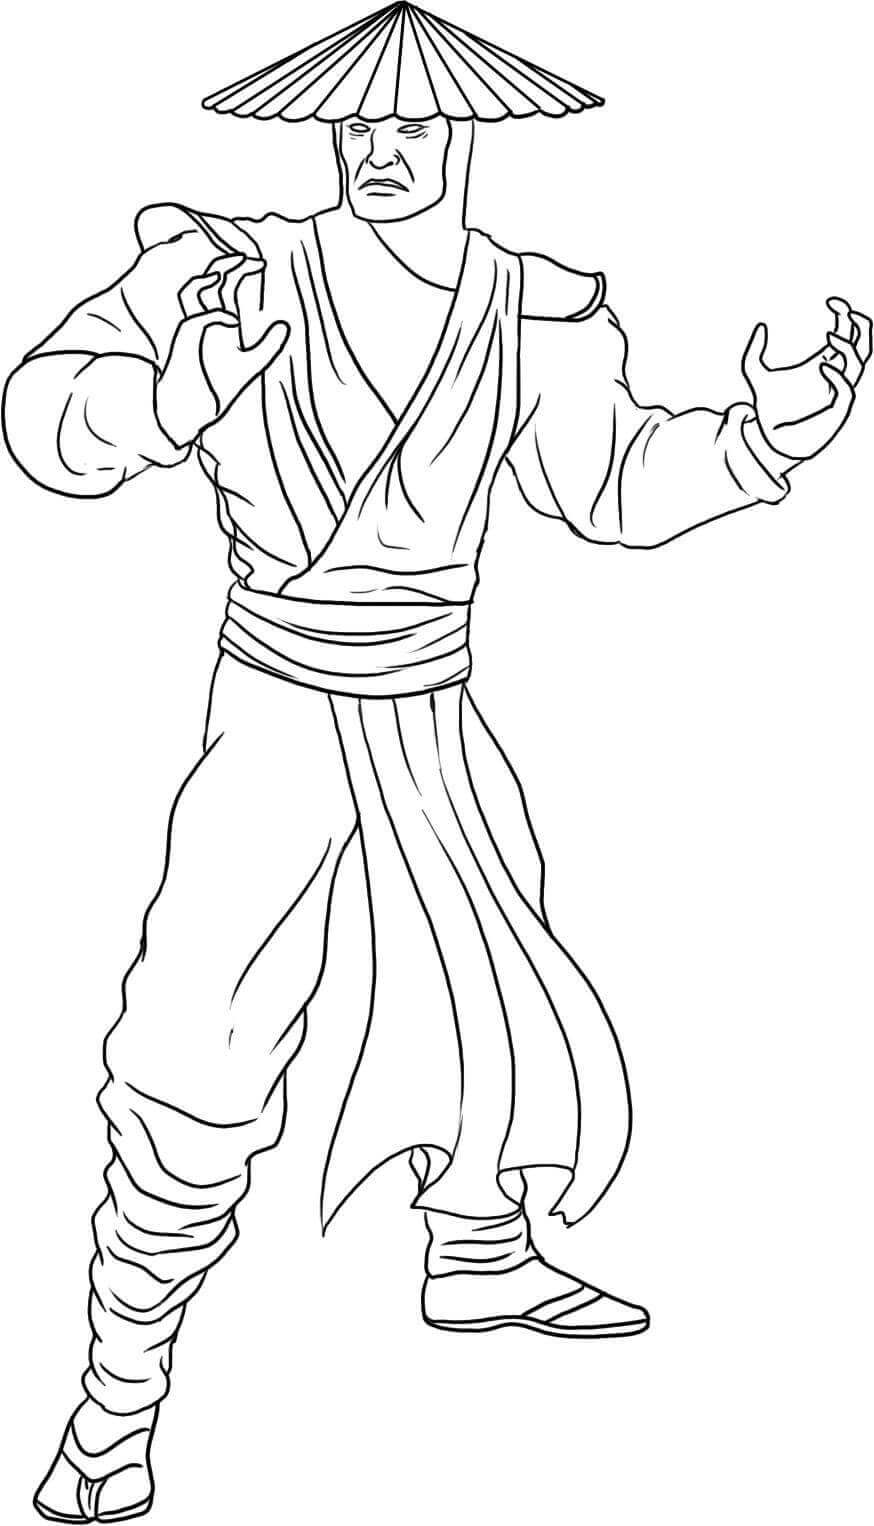 25 Free Mortal Kombat Coloring Pages Printable Coloring Junction